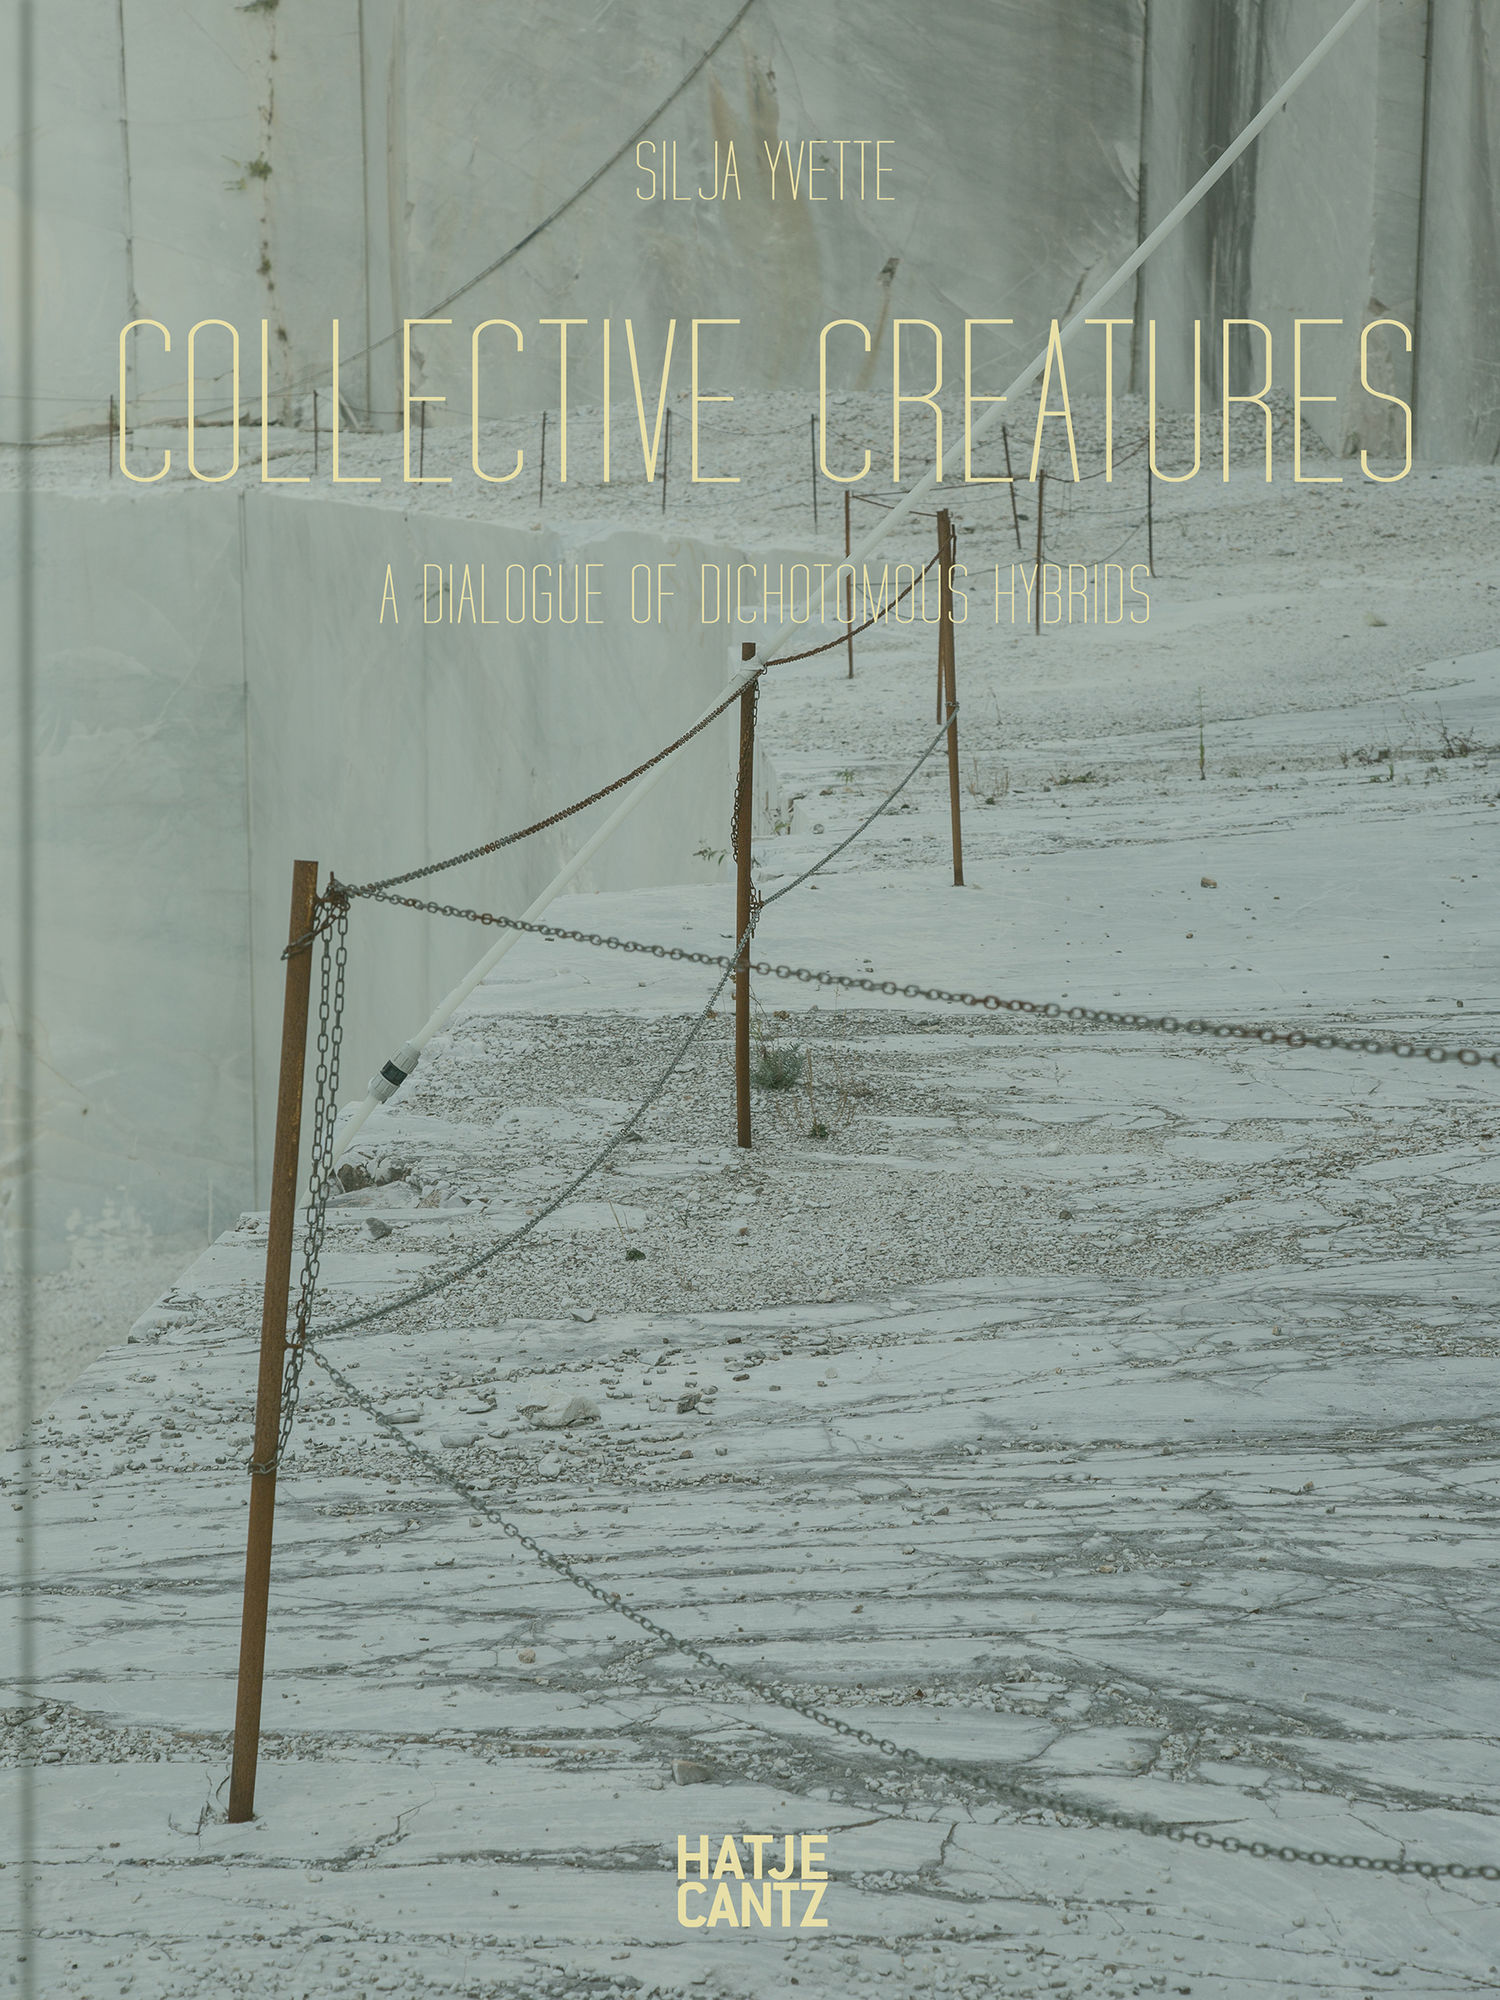 Silja Yvette 'Collective Creatures' / Hatje Cantz Publishers